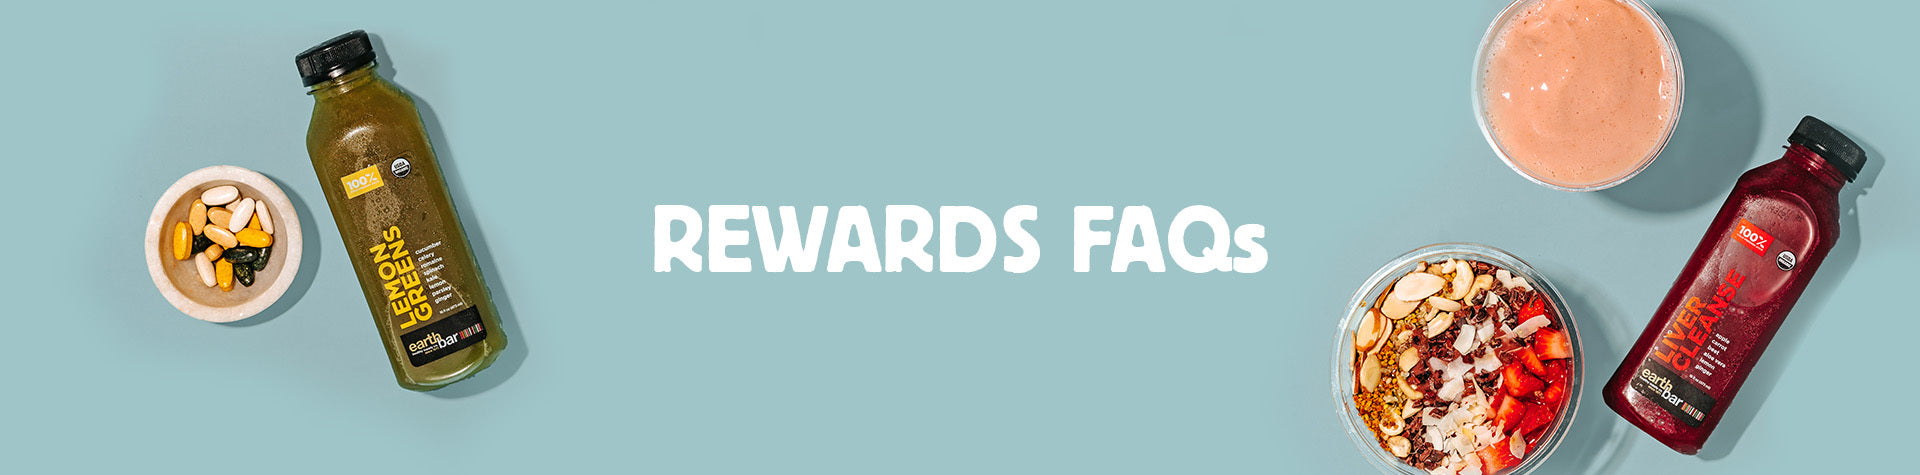 Rewards FAQs